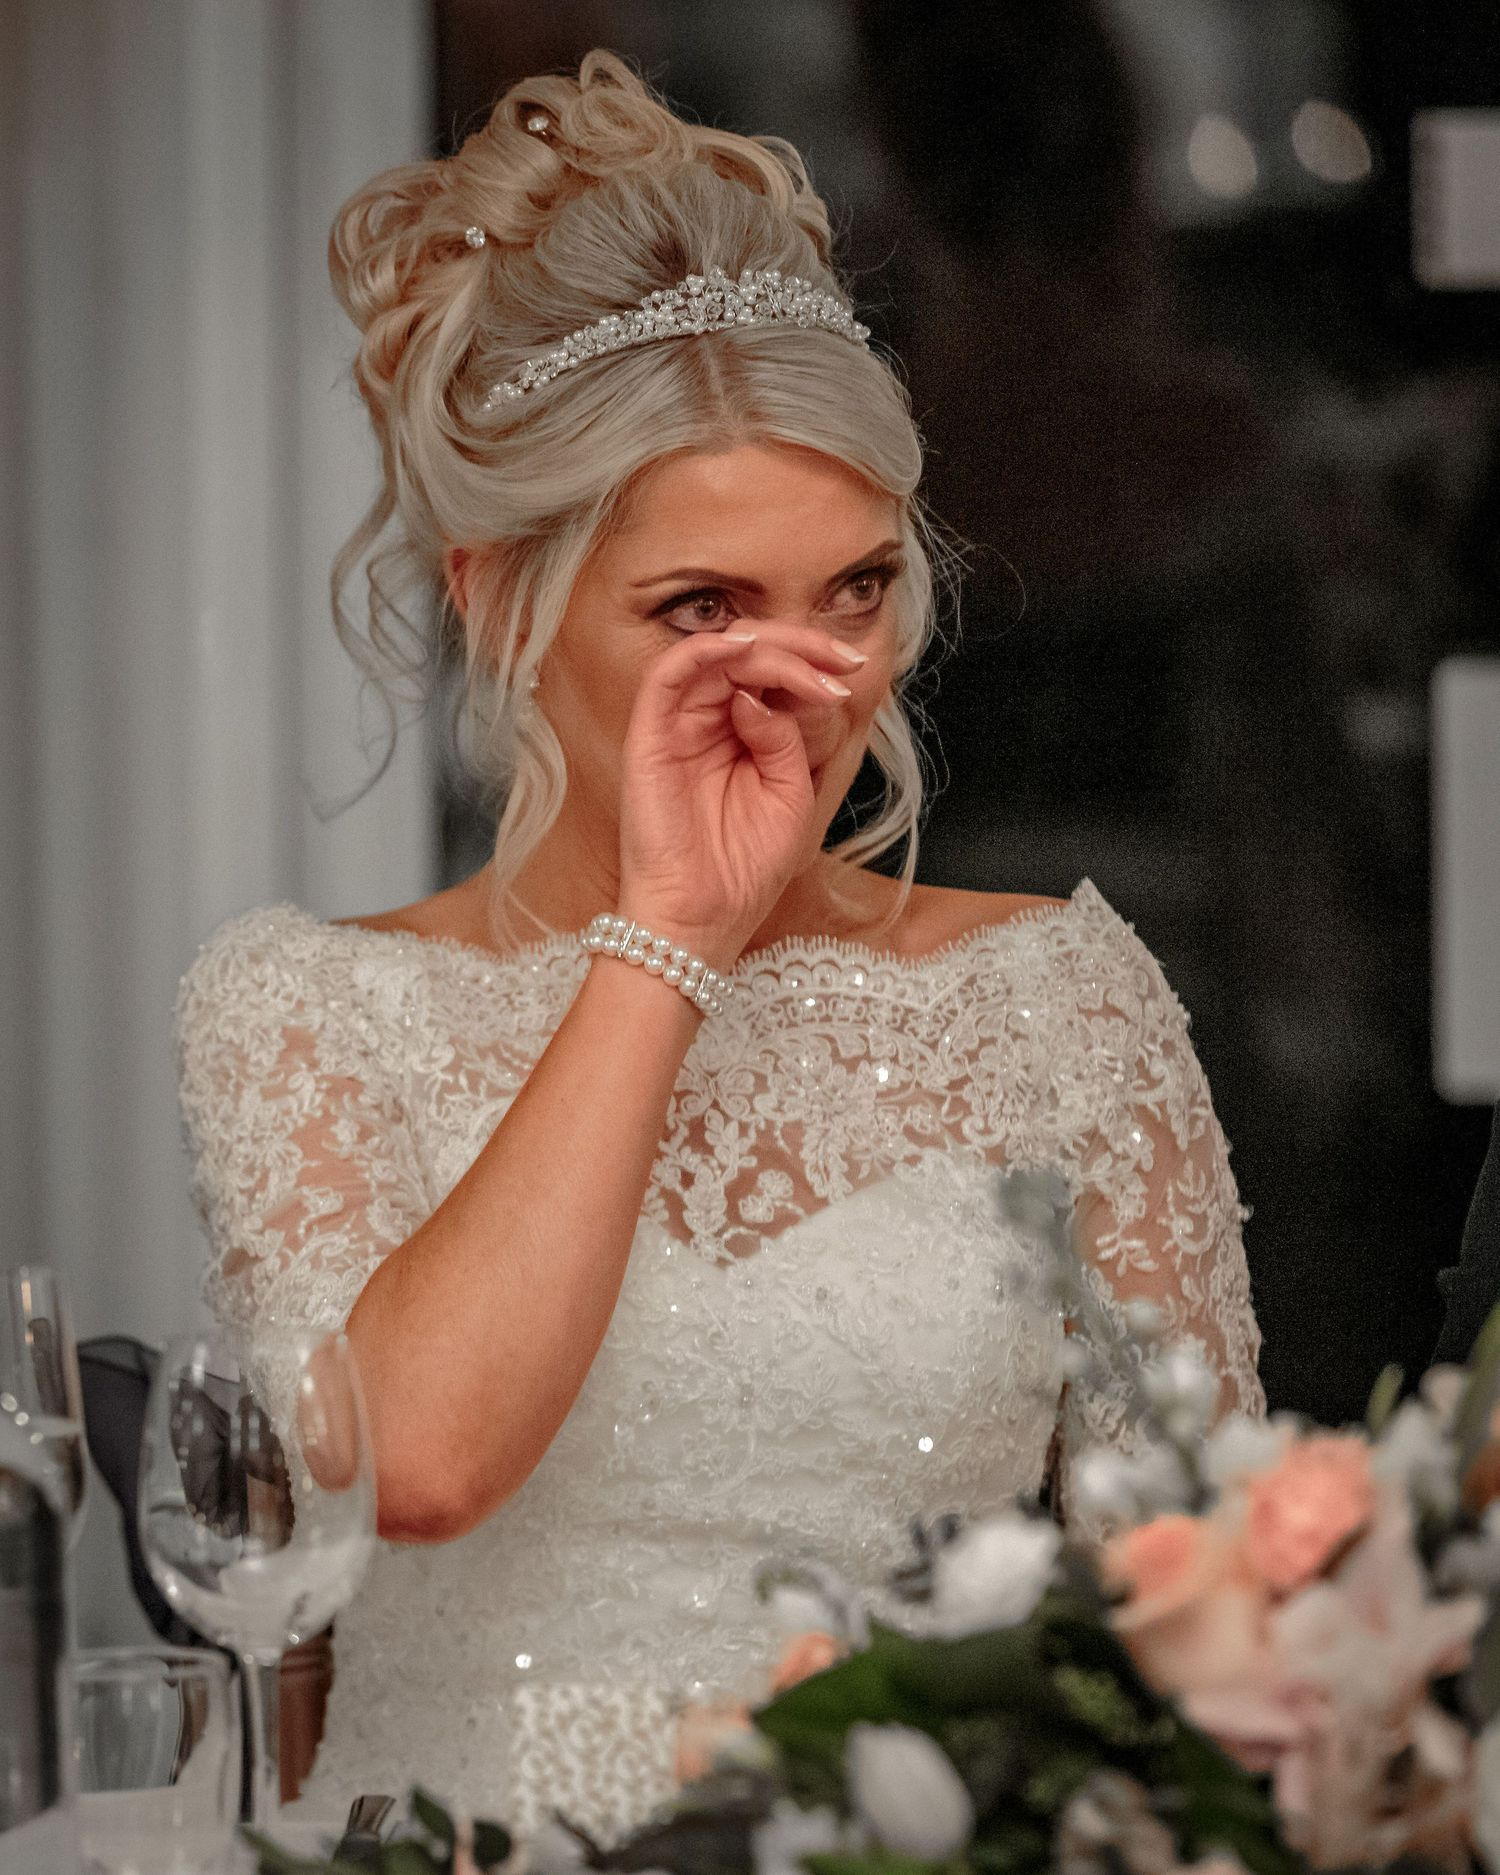 bride puts her hand to her face to wipe away a tear during the wedding speeches